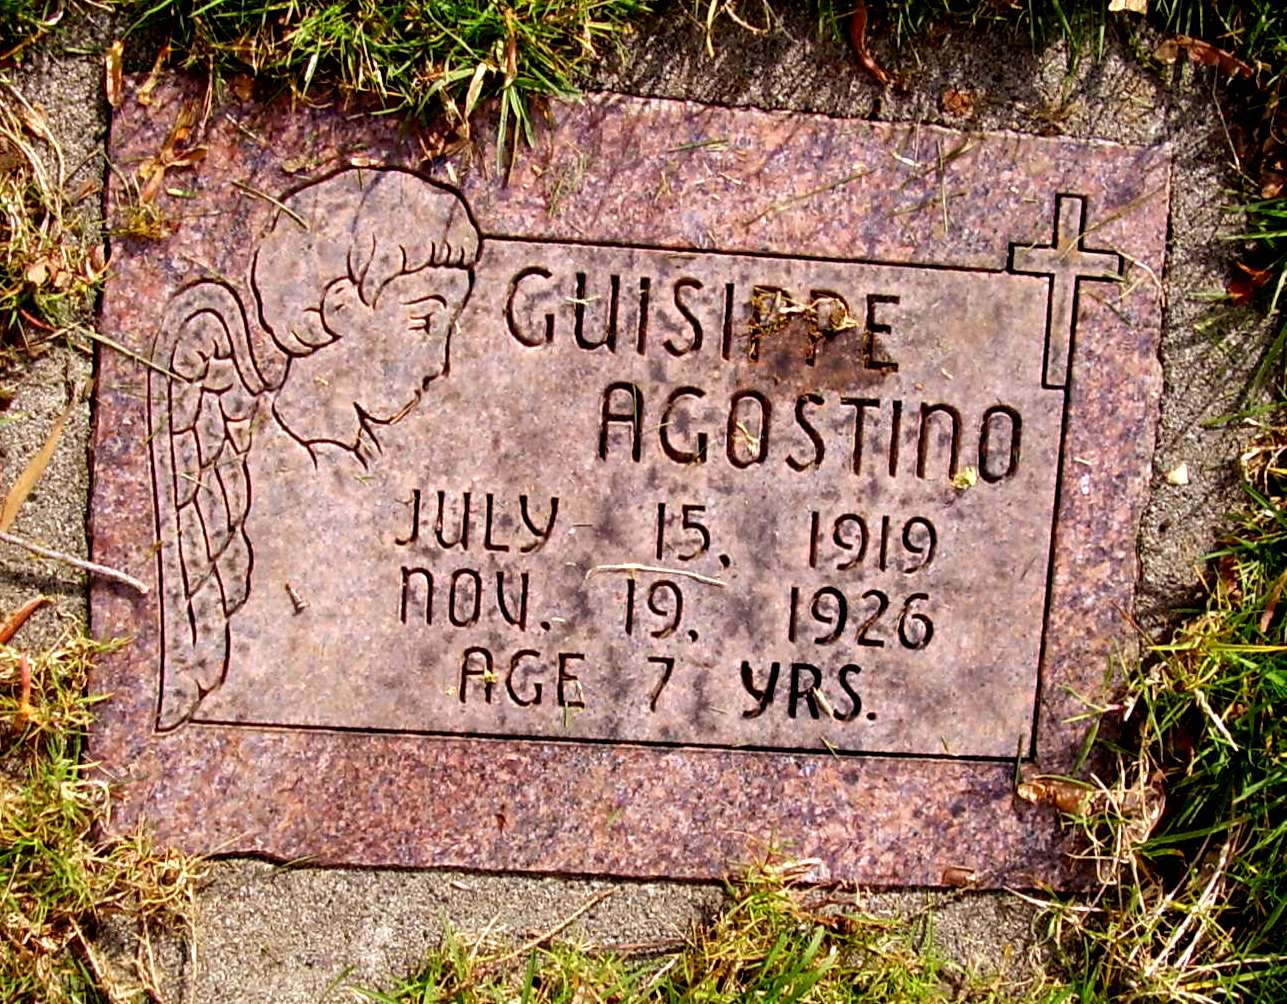 Guisippe Agostino